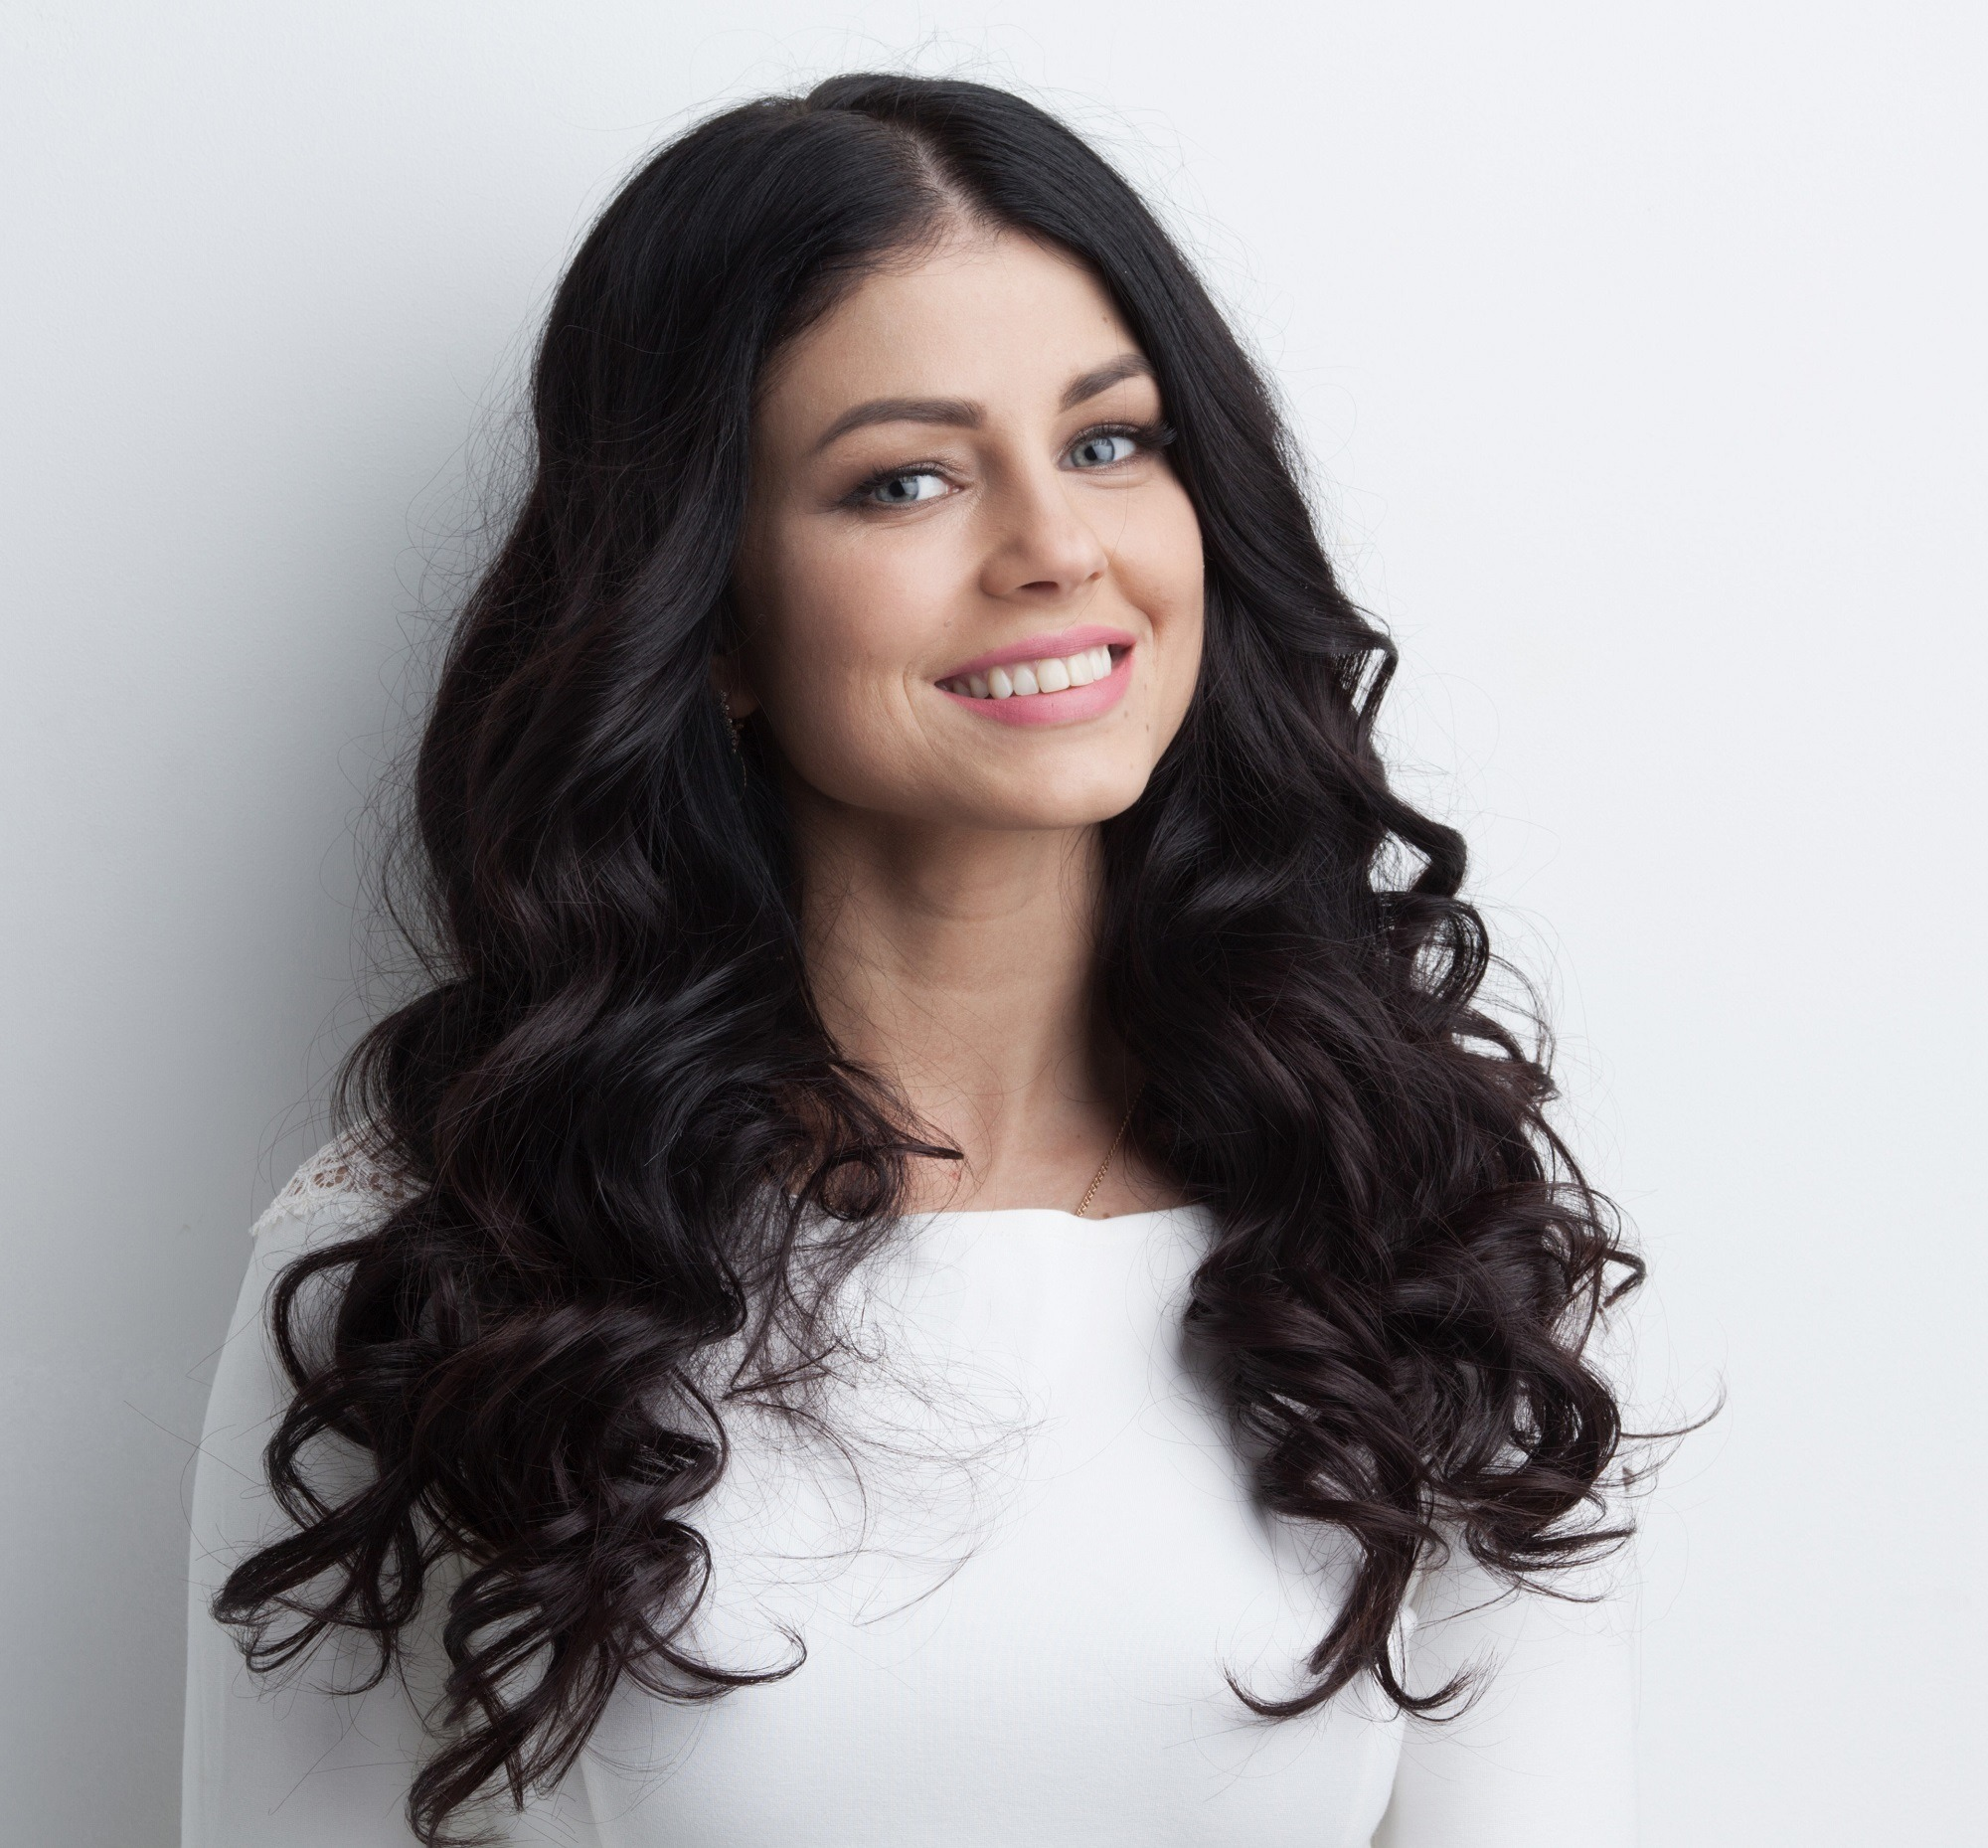 Long black hair: Closeup shot of woman with long black curly hair wearing a white blouse